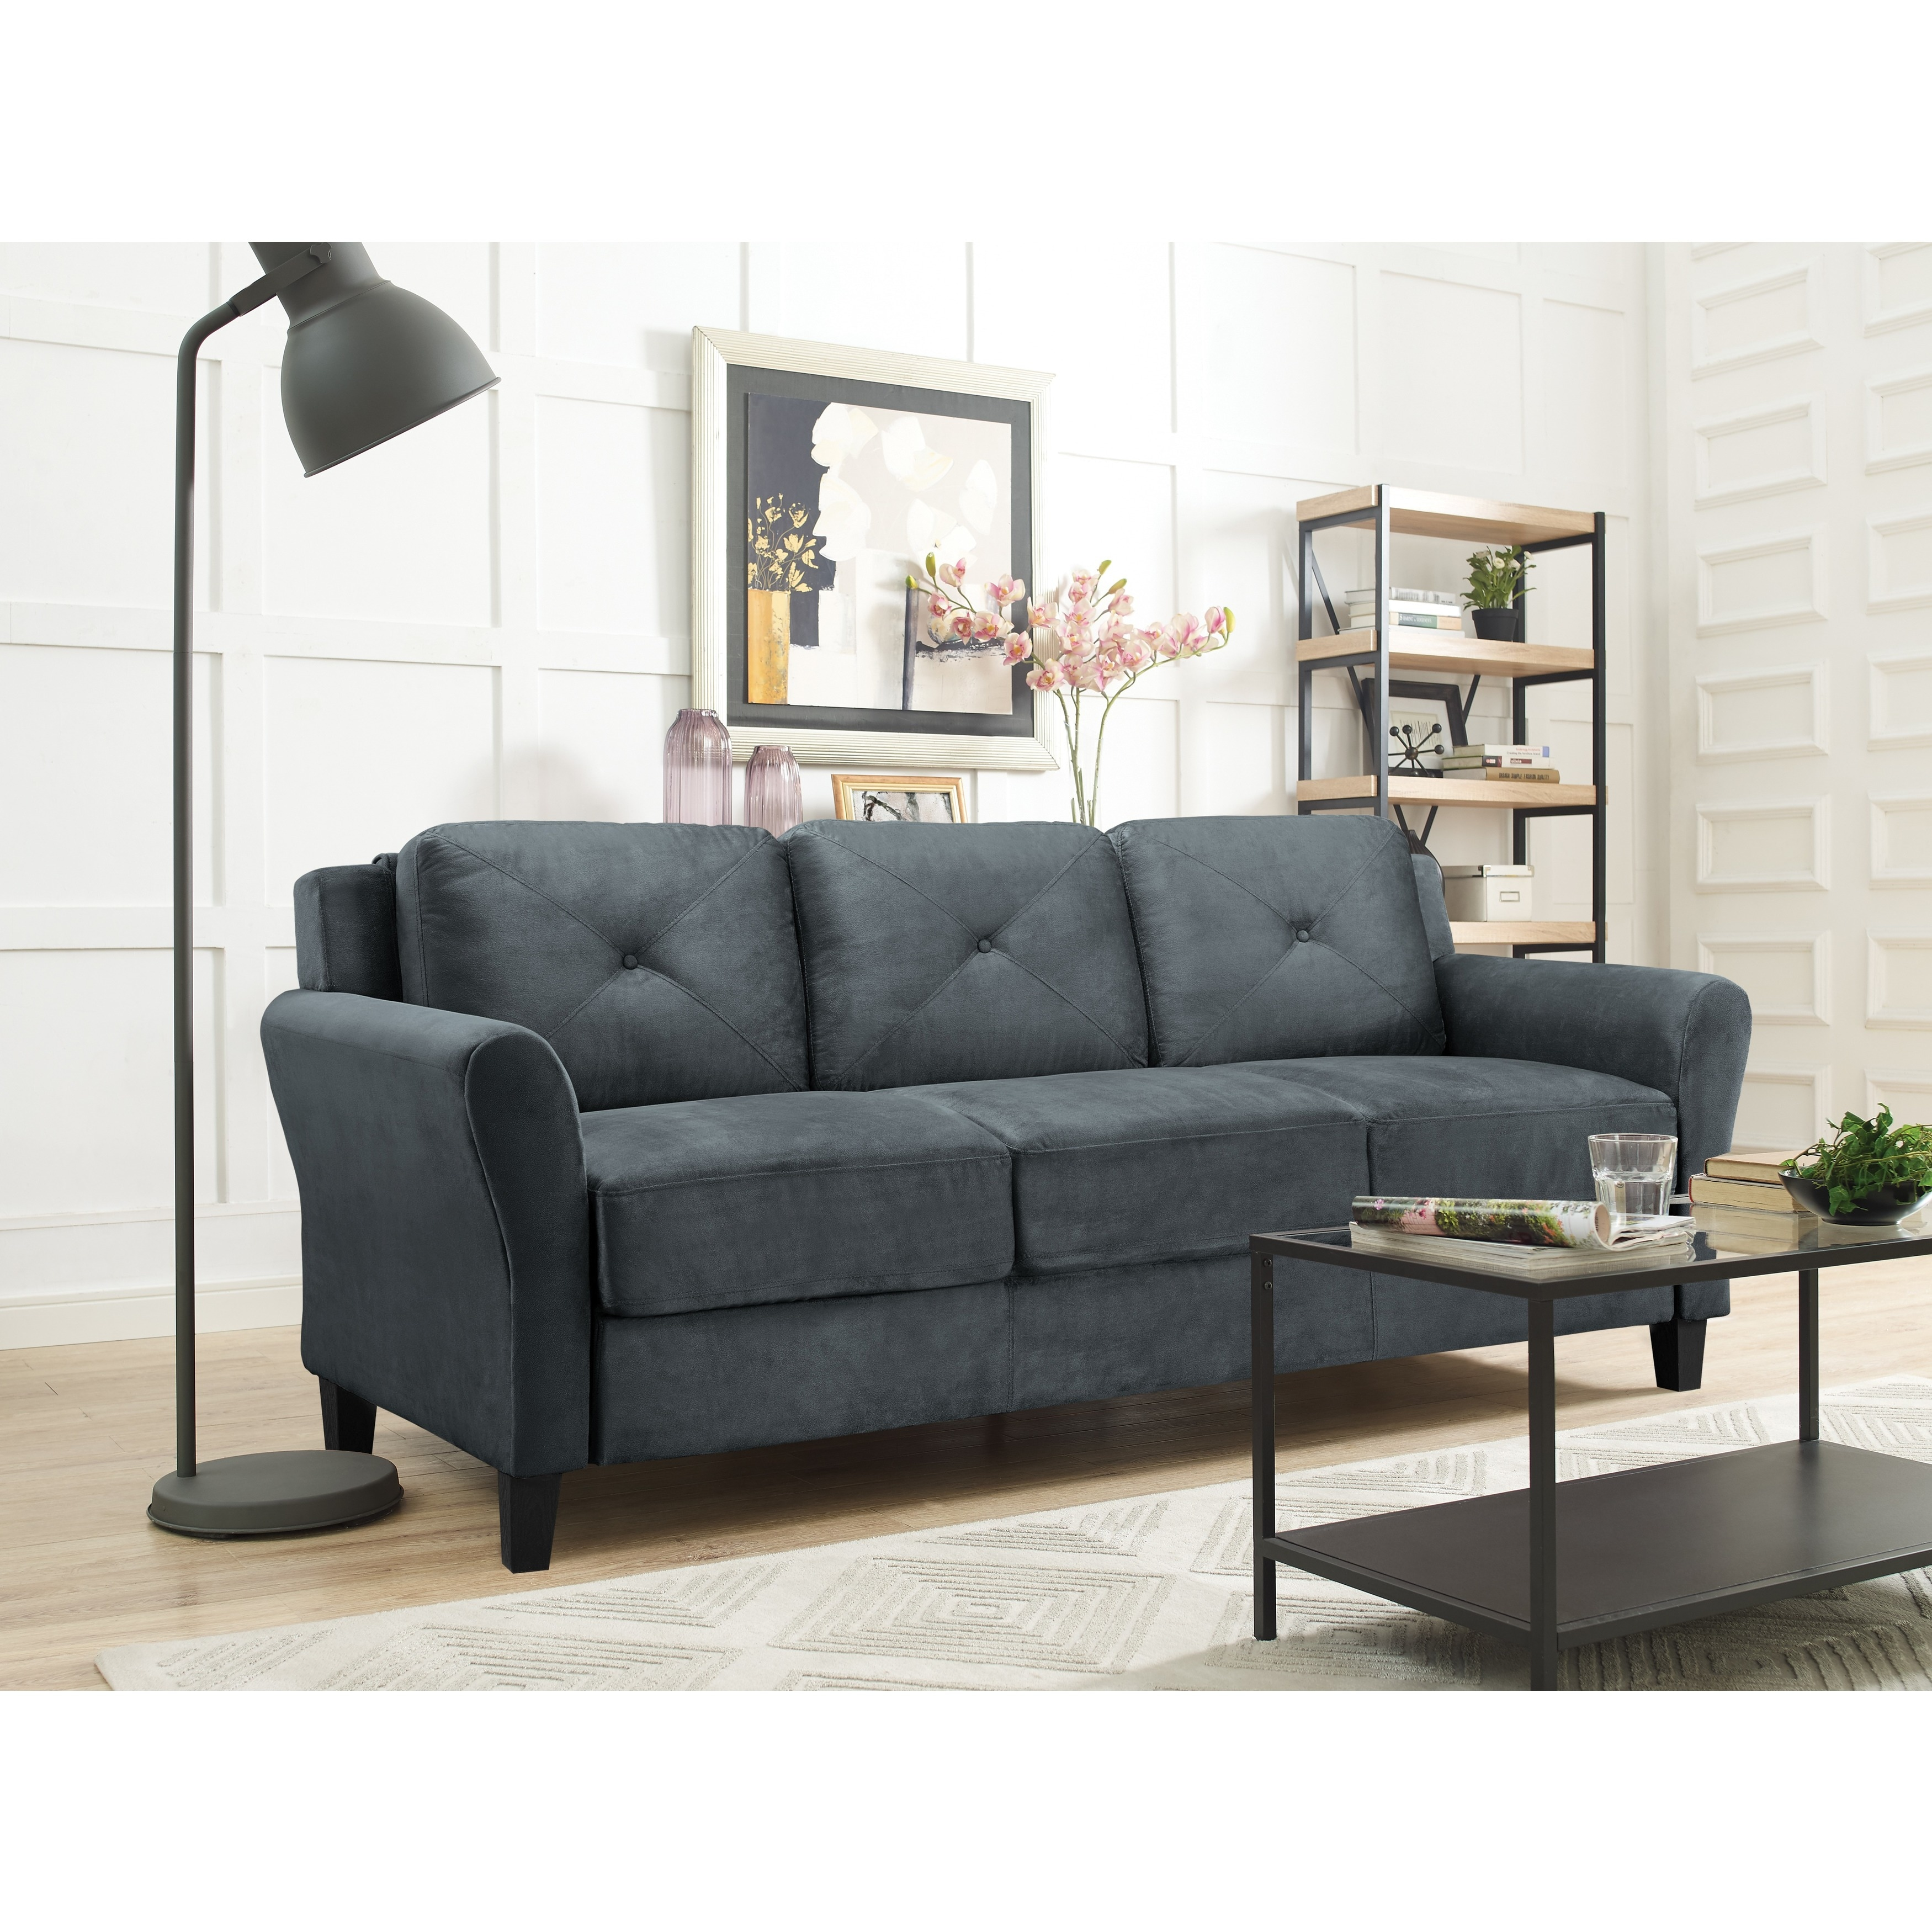 Shop Lifestyle Solutions Harvard Microfiber Sofa   Free Shipping Today    Overstock.com   17126311